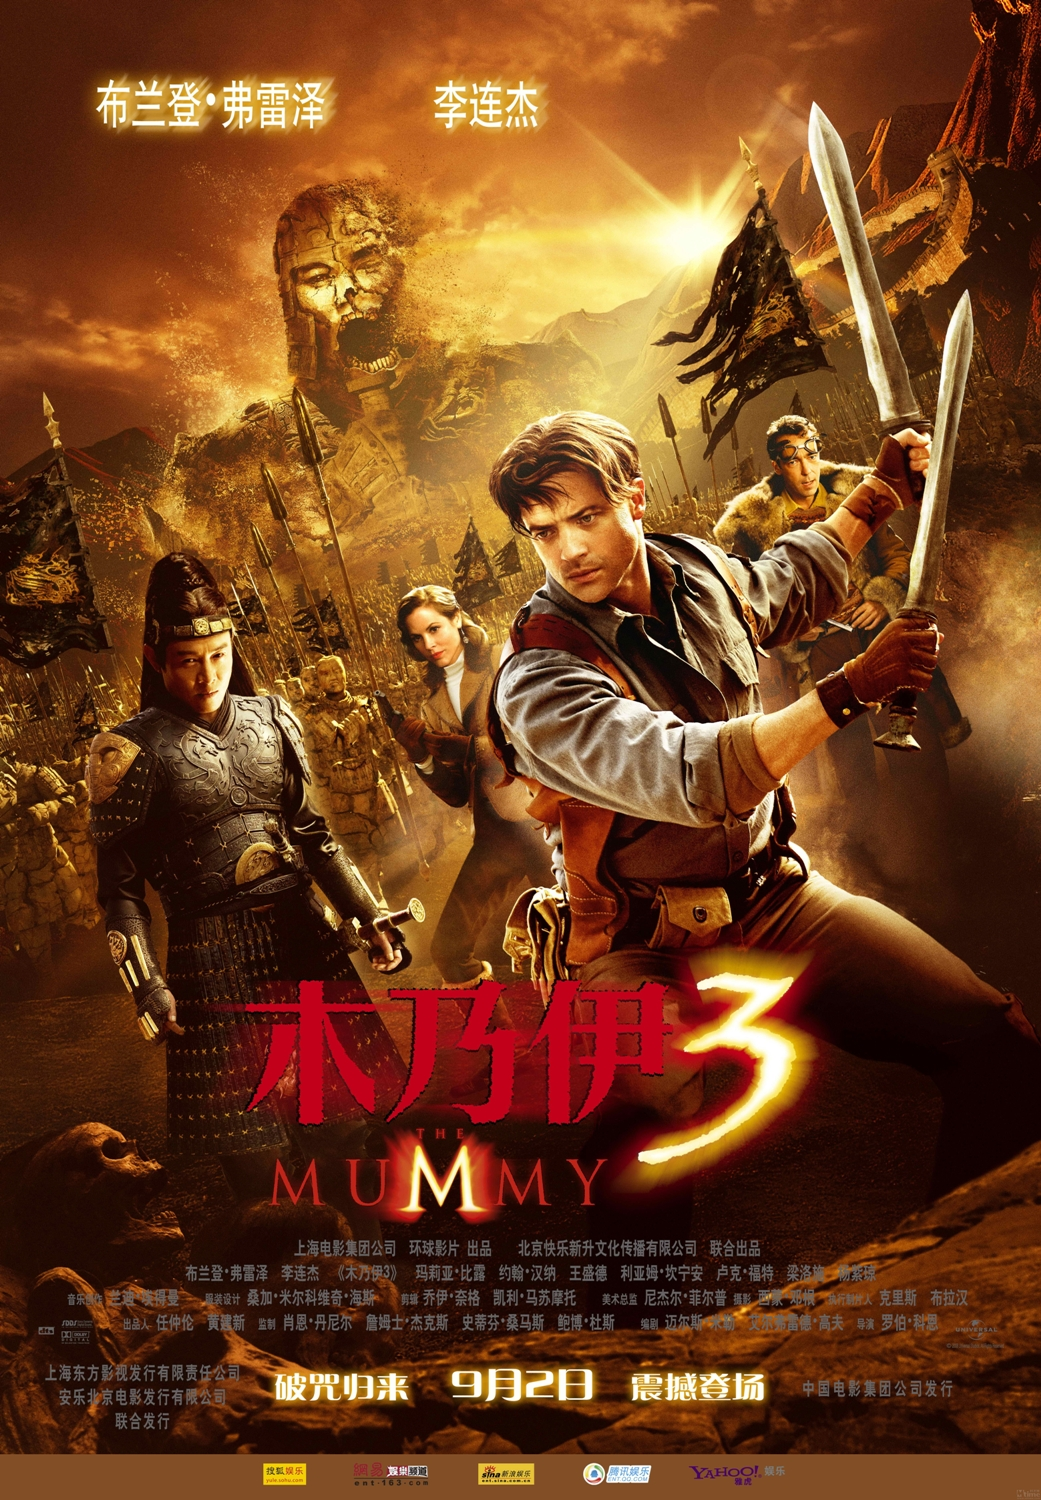 The Mummy 3: Insult To China and Chinese People? - chinaSMACK